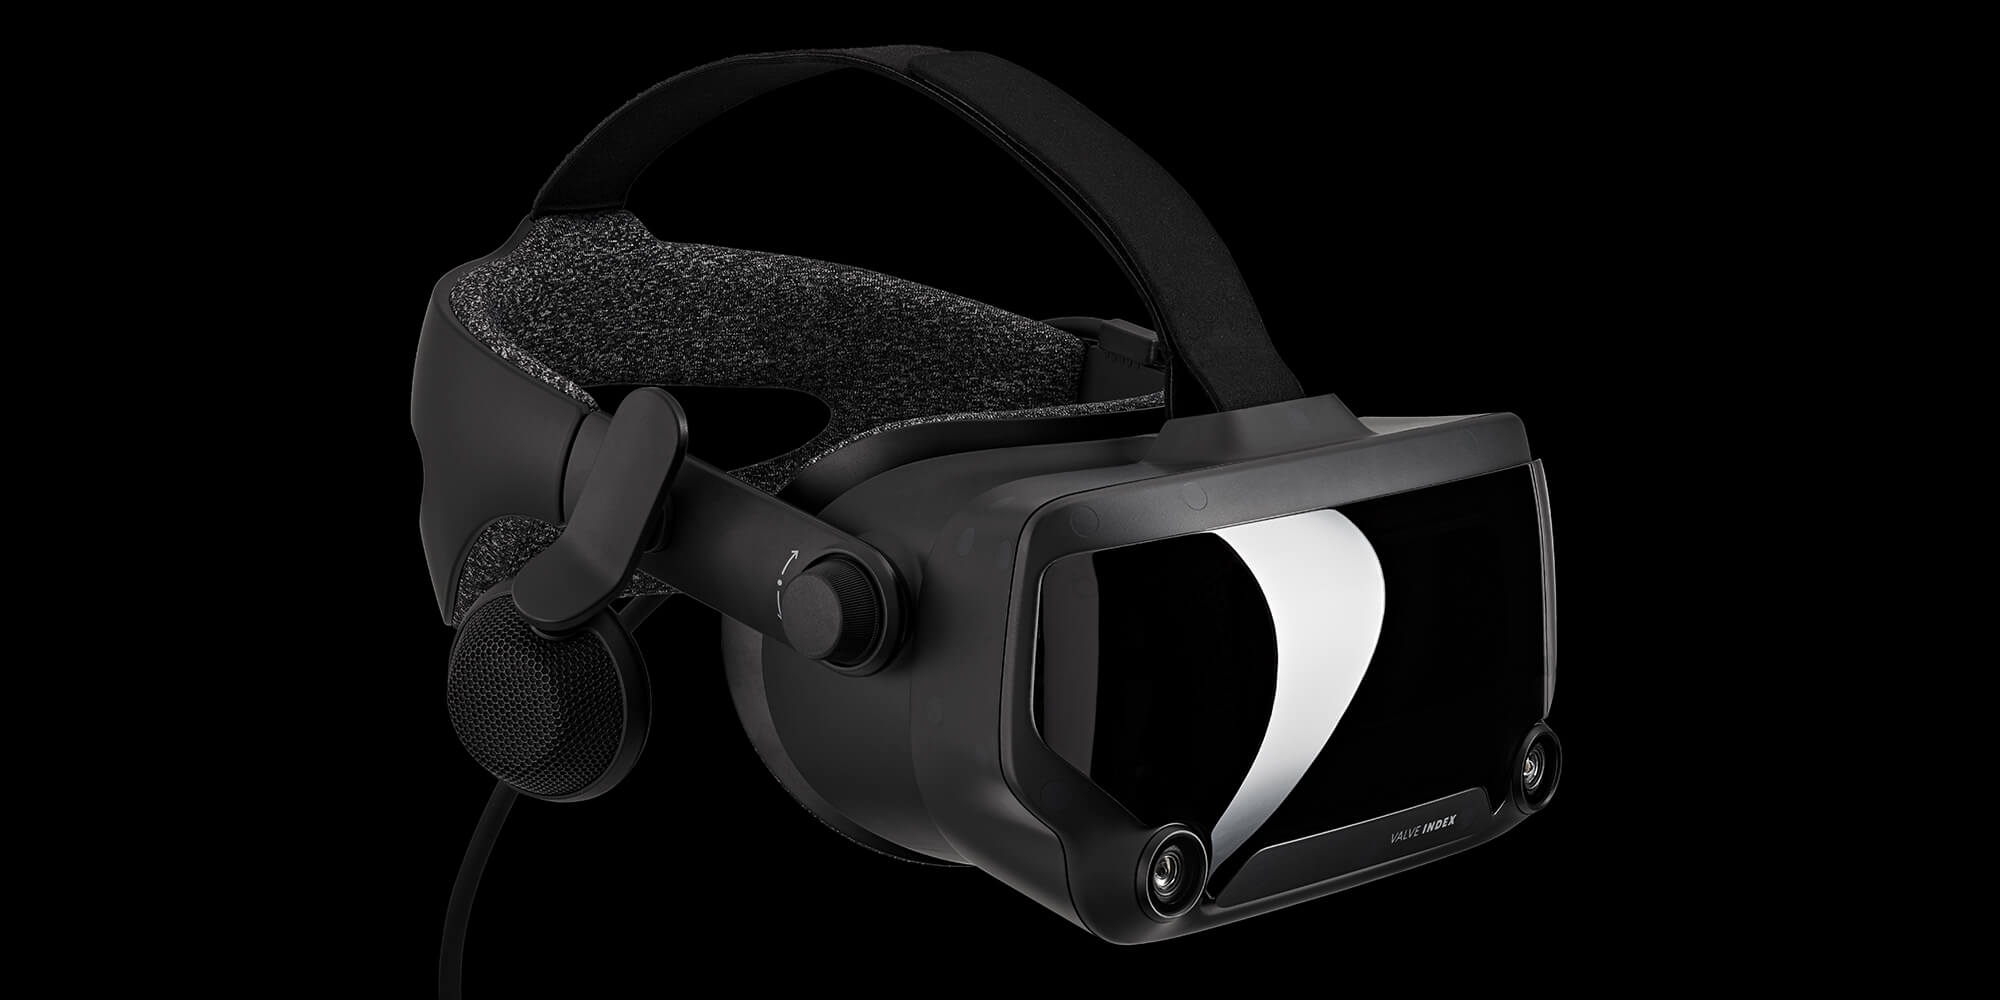 Valve's new Index headset is a high end option for VR fans